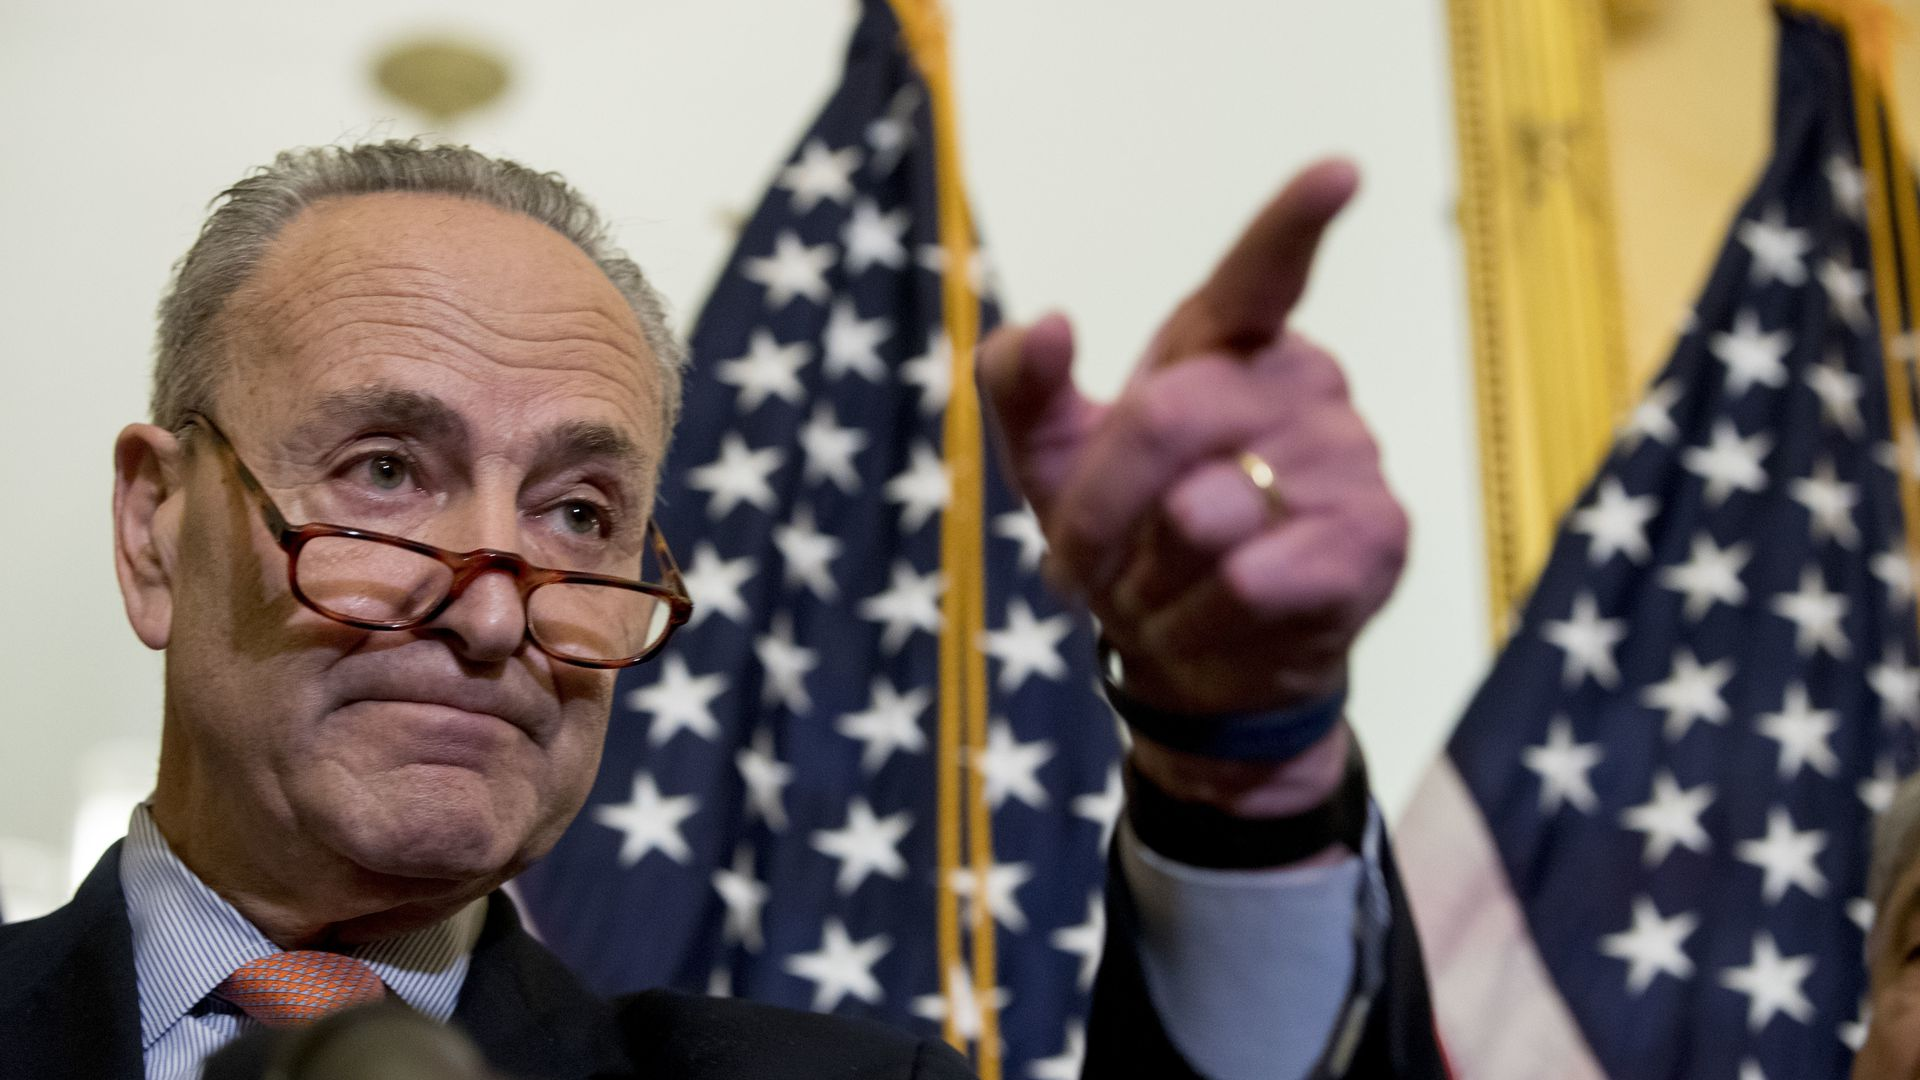 Chuck Schumer calling on a reporter during a press conference on Capitol Hill.